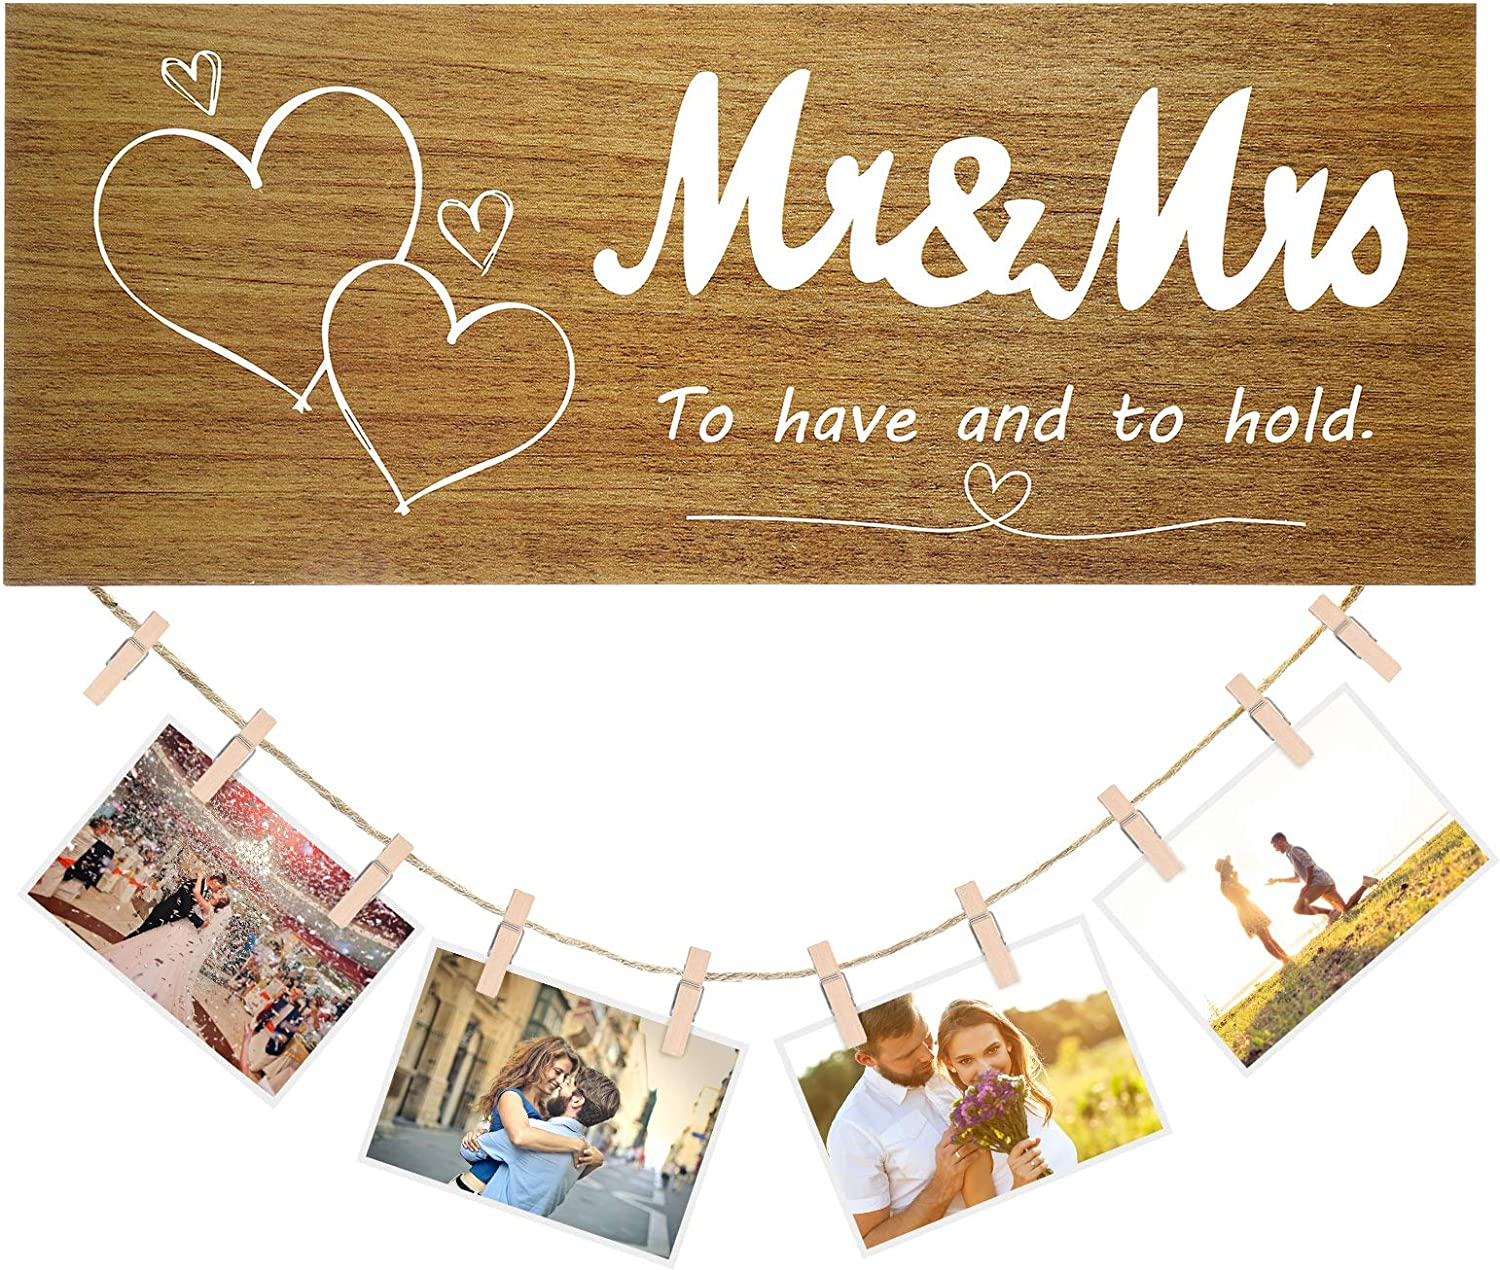 Jetec Valentine's Day Wood Sign Mr. & Mrs Picture Frame Wooden Hanging Photo Display Wall Hanger Decor with Photo Clip and Rope for Wedding Holiday Decor, 14 x 5.5 Inch